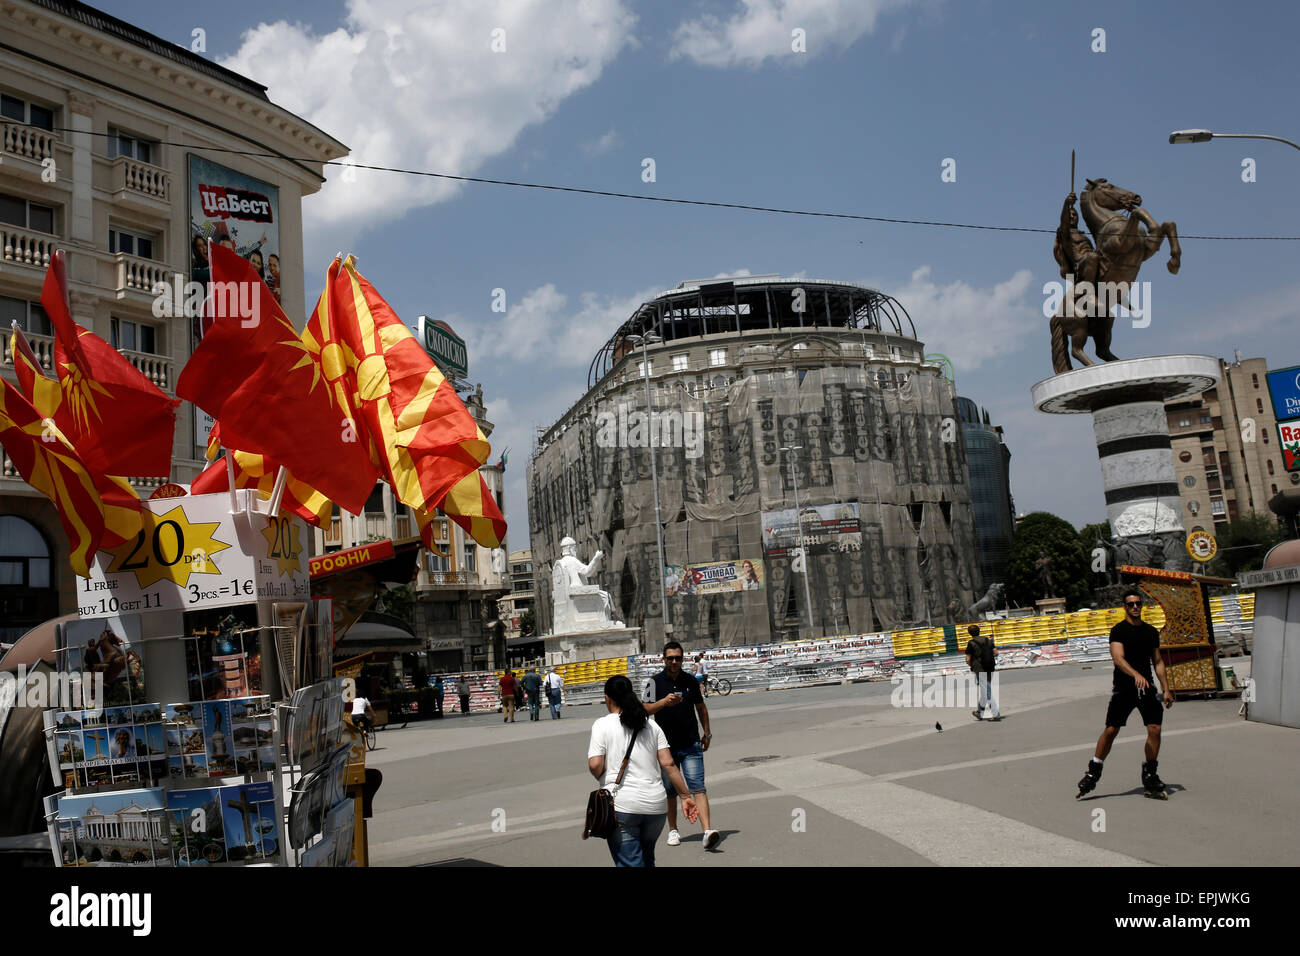 People wak in Macedonia square in central Skopje, FYROM on May 17, 2015. - Stock Image